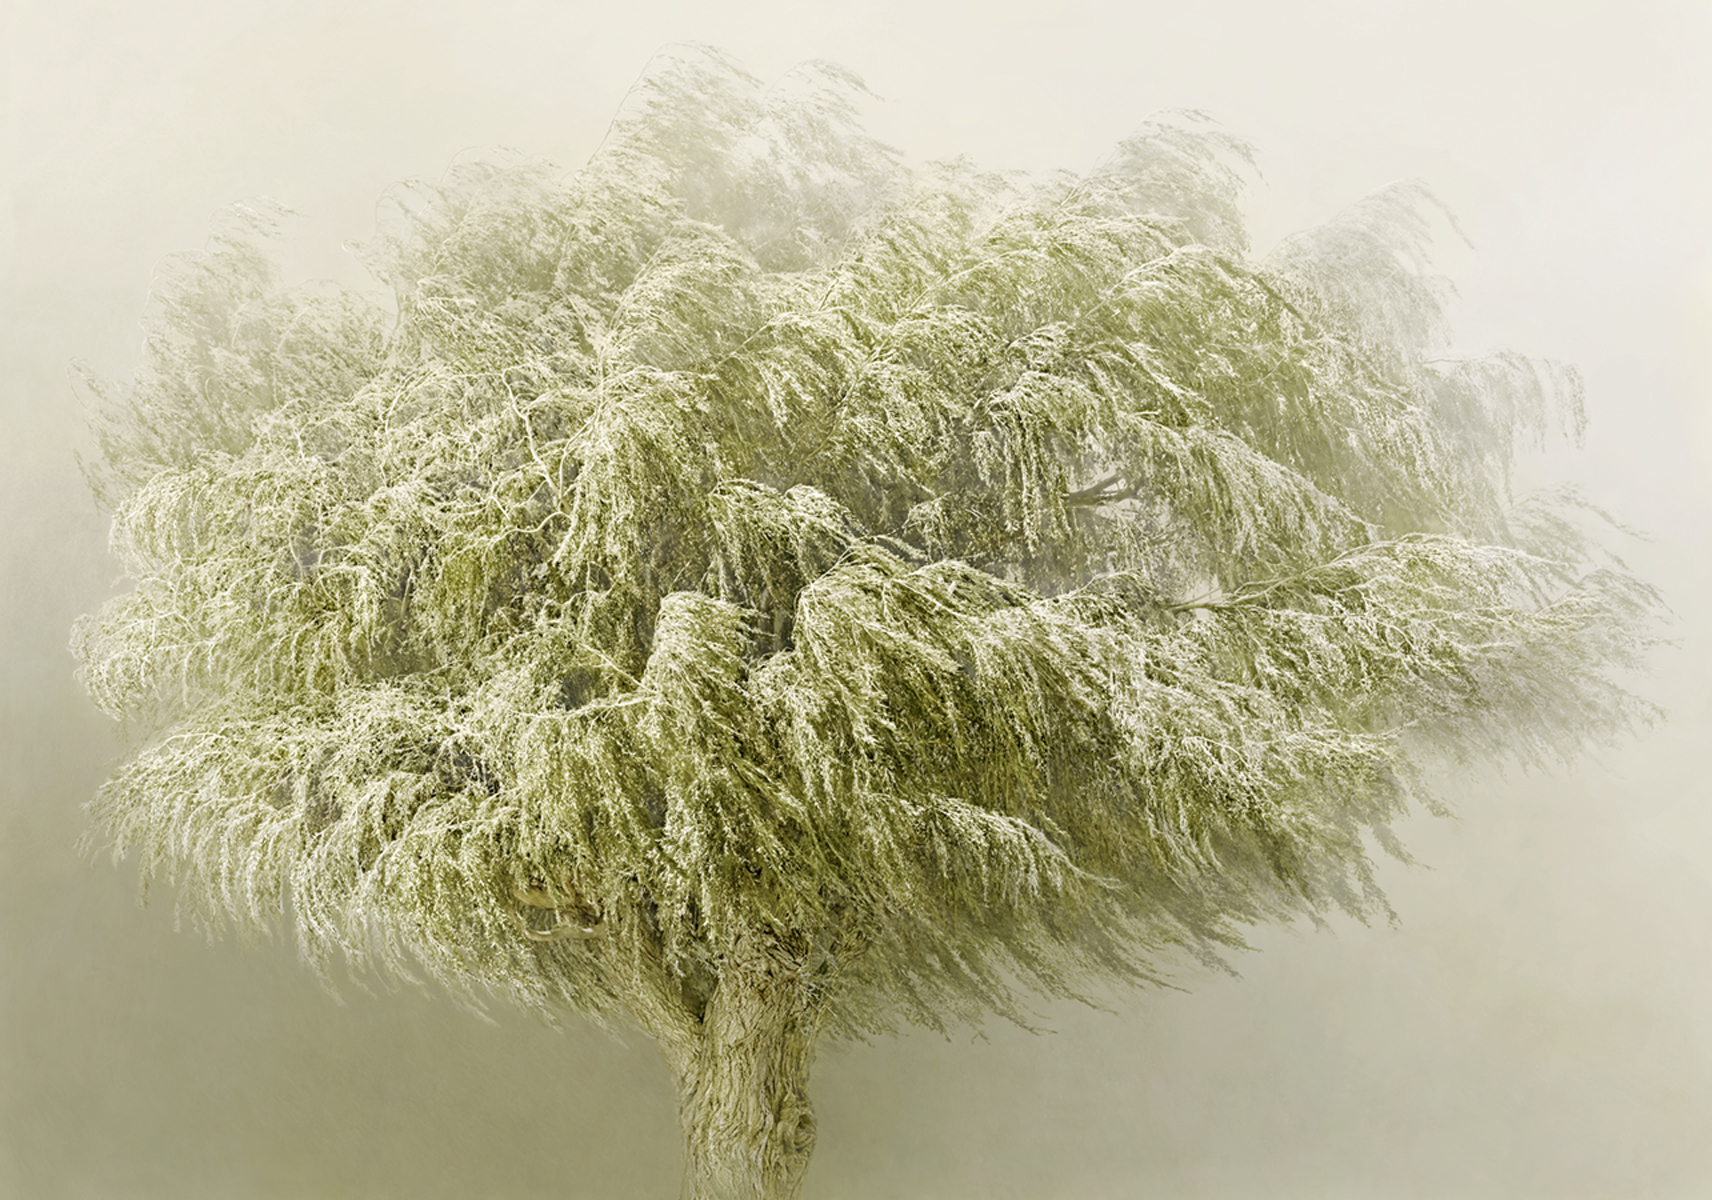 Irene Kung, Willow Tree / Copyright: Irene Kung